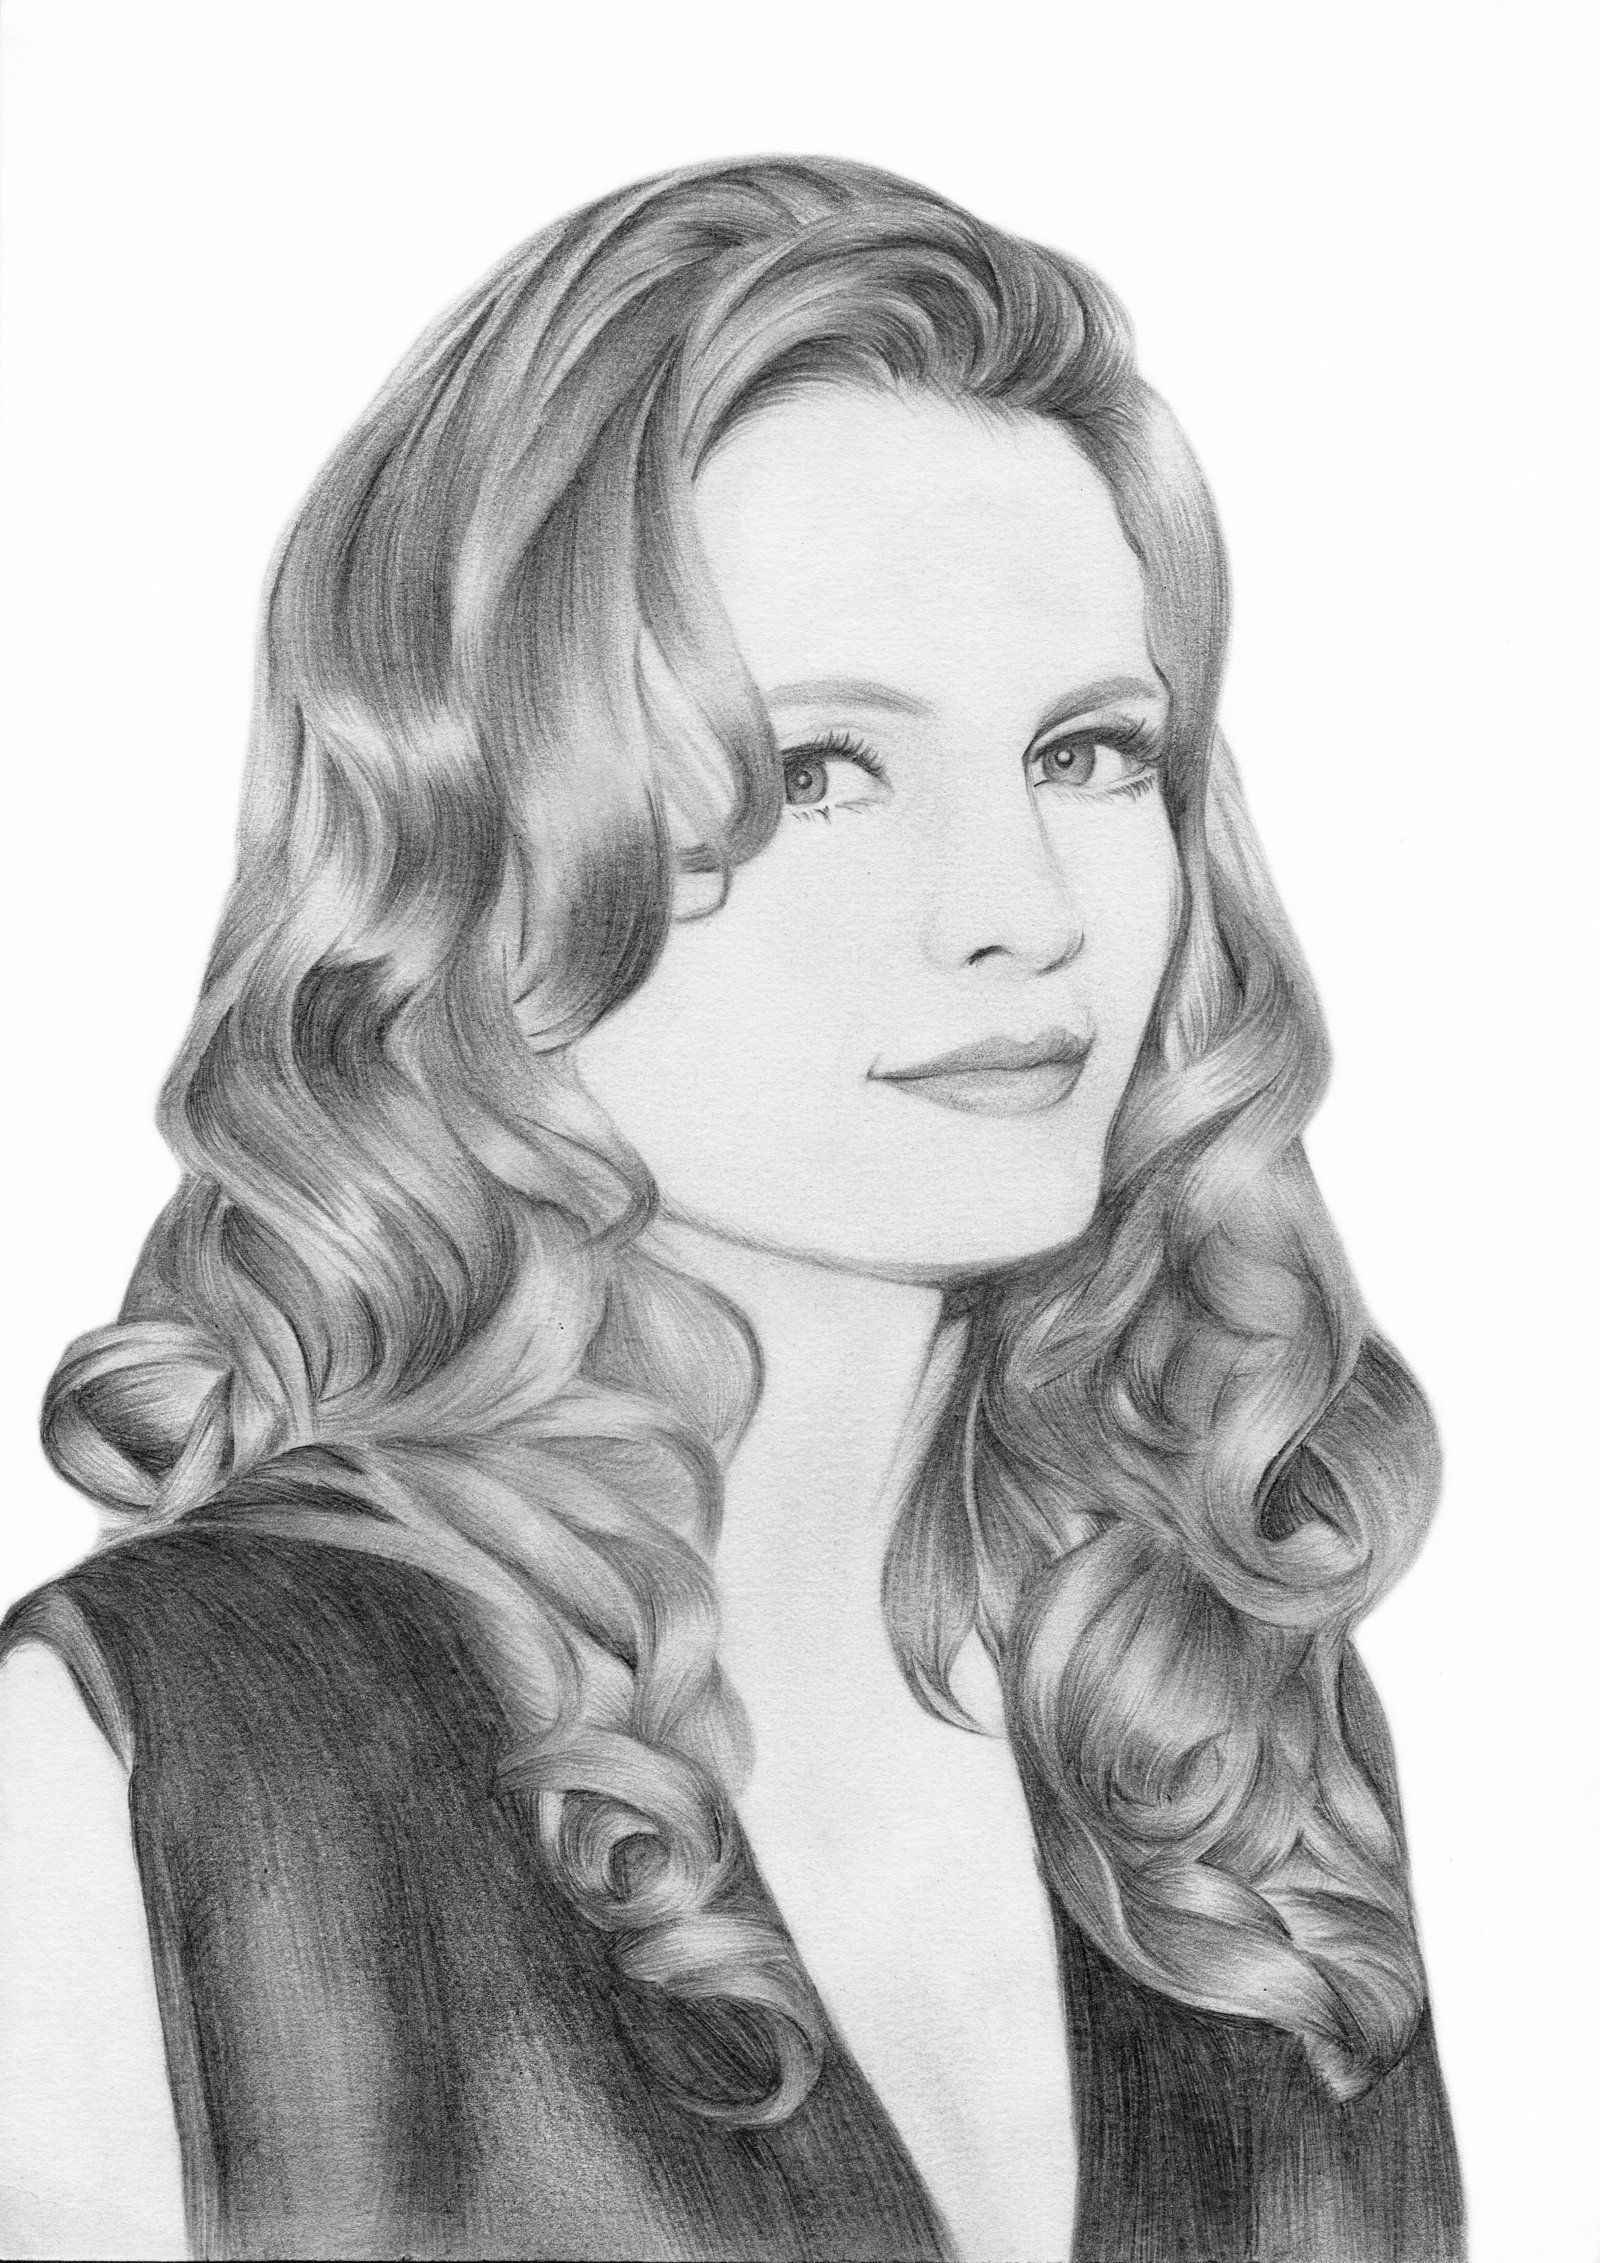 Stana Katic by Emily Cheng